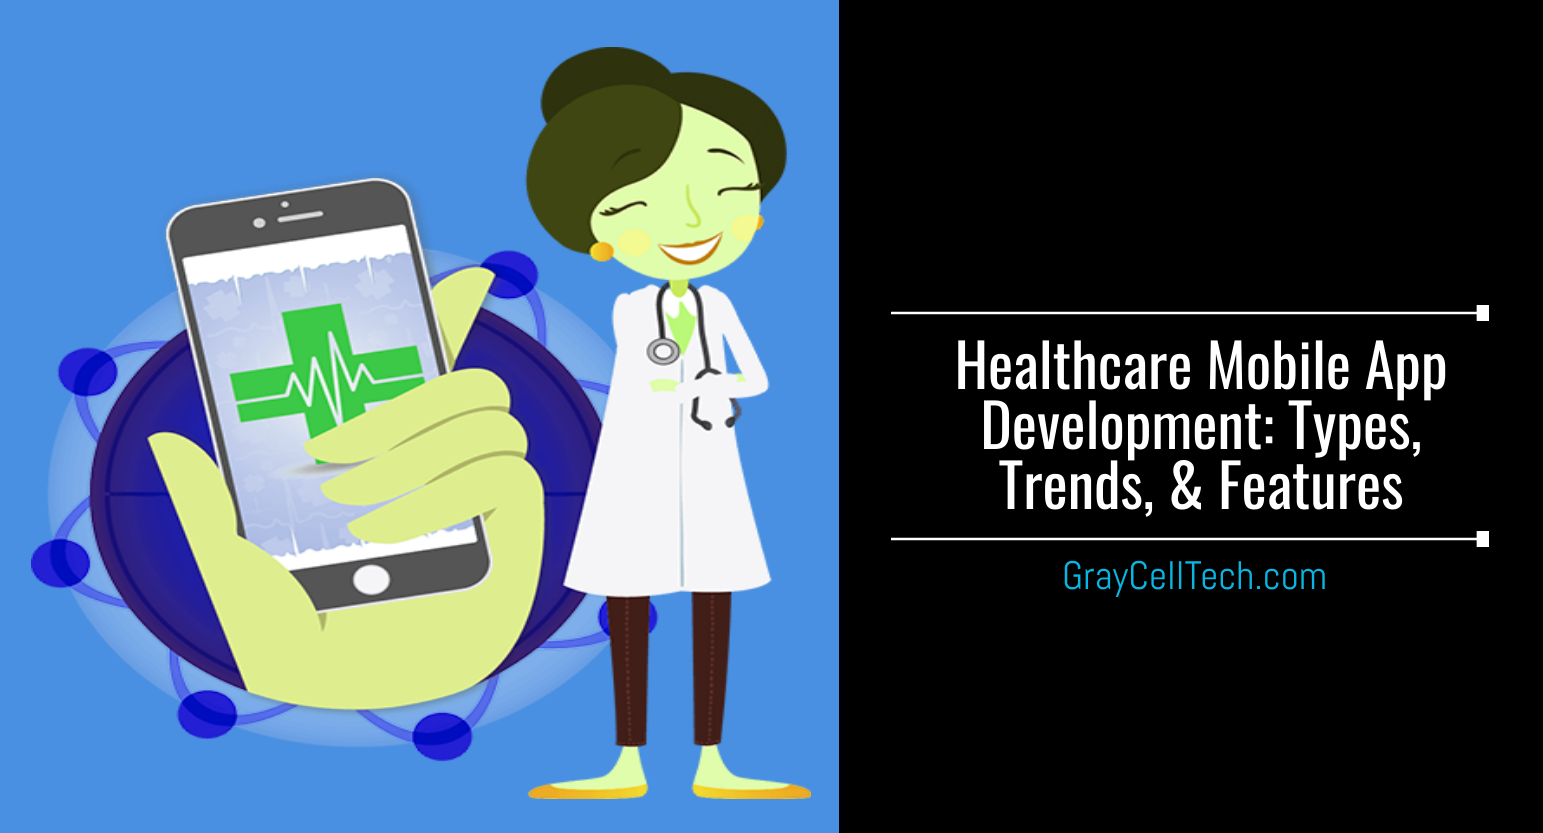 Healthcare Mobile App Development: Types, Trends, & Features